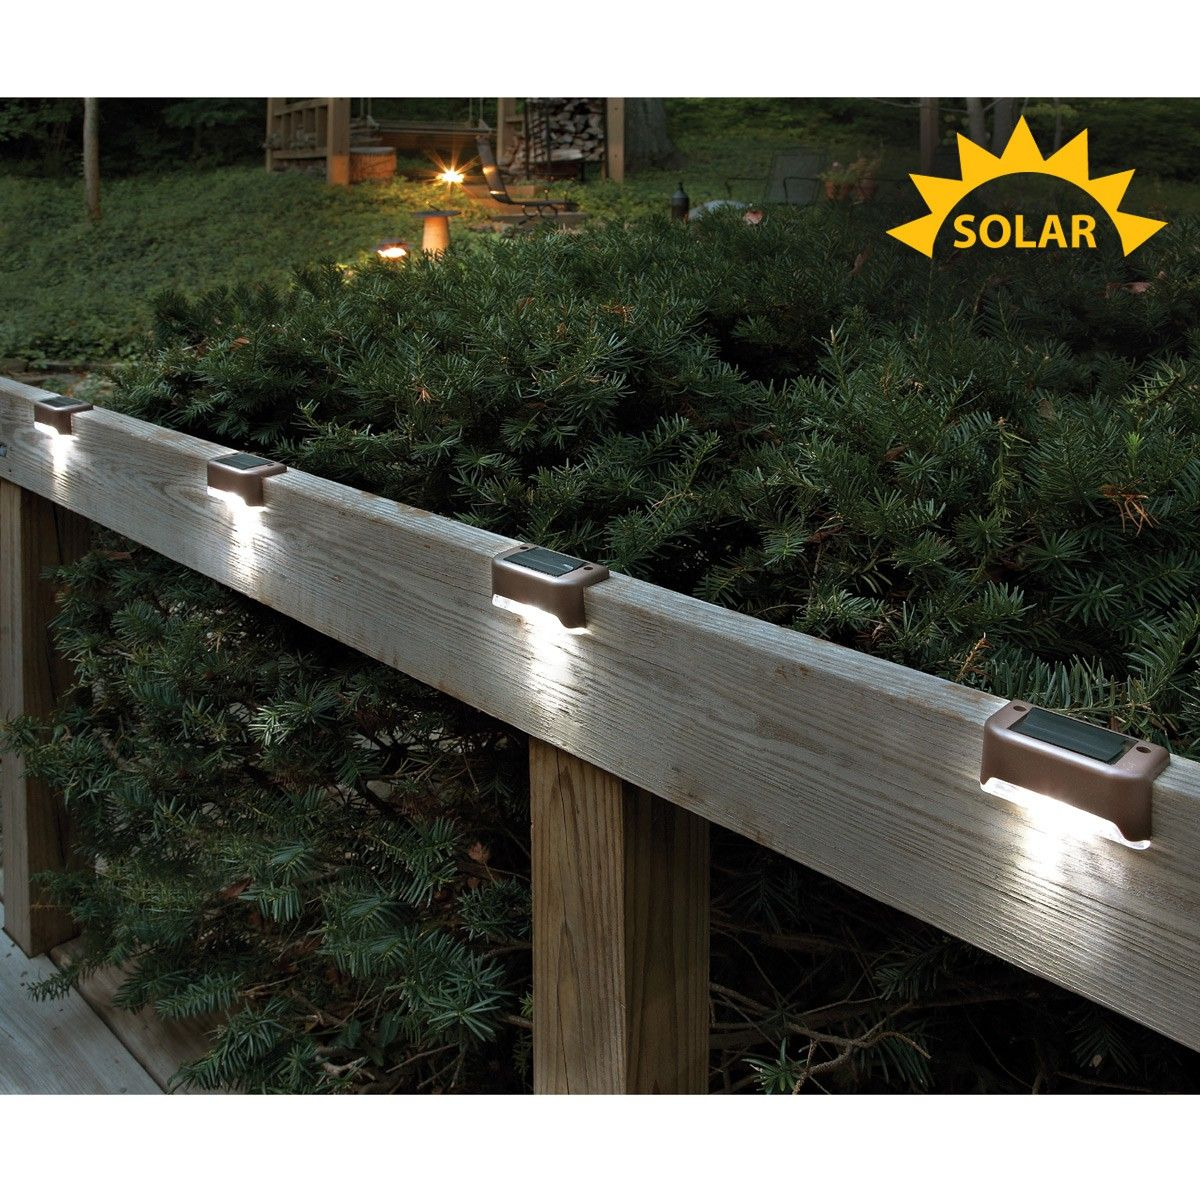 Solar led deck lights set of 4 solar led solar and decking solar led deck lights set of 4 aloadofball Images